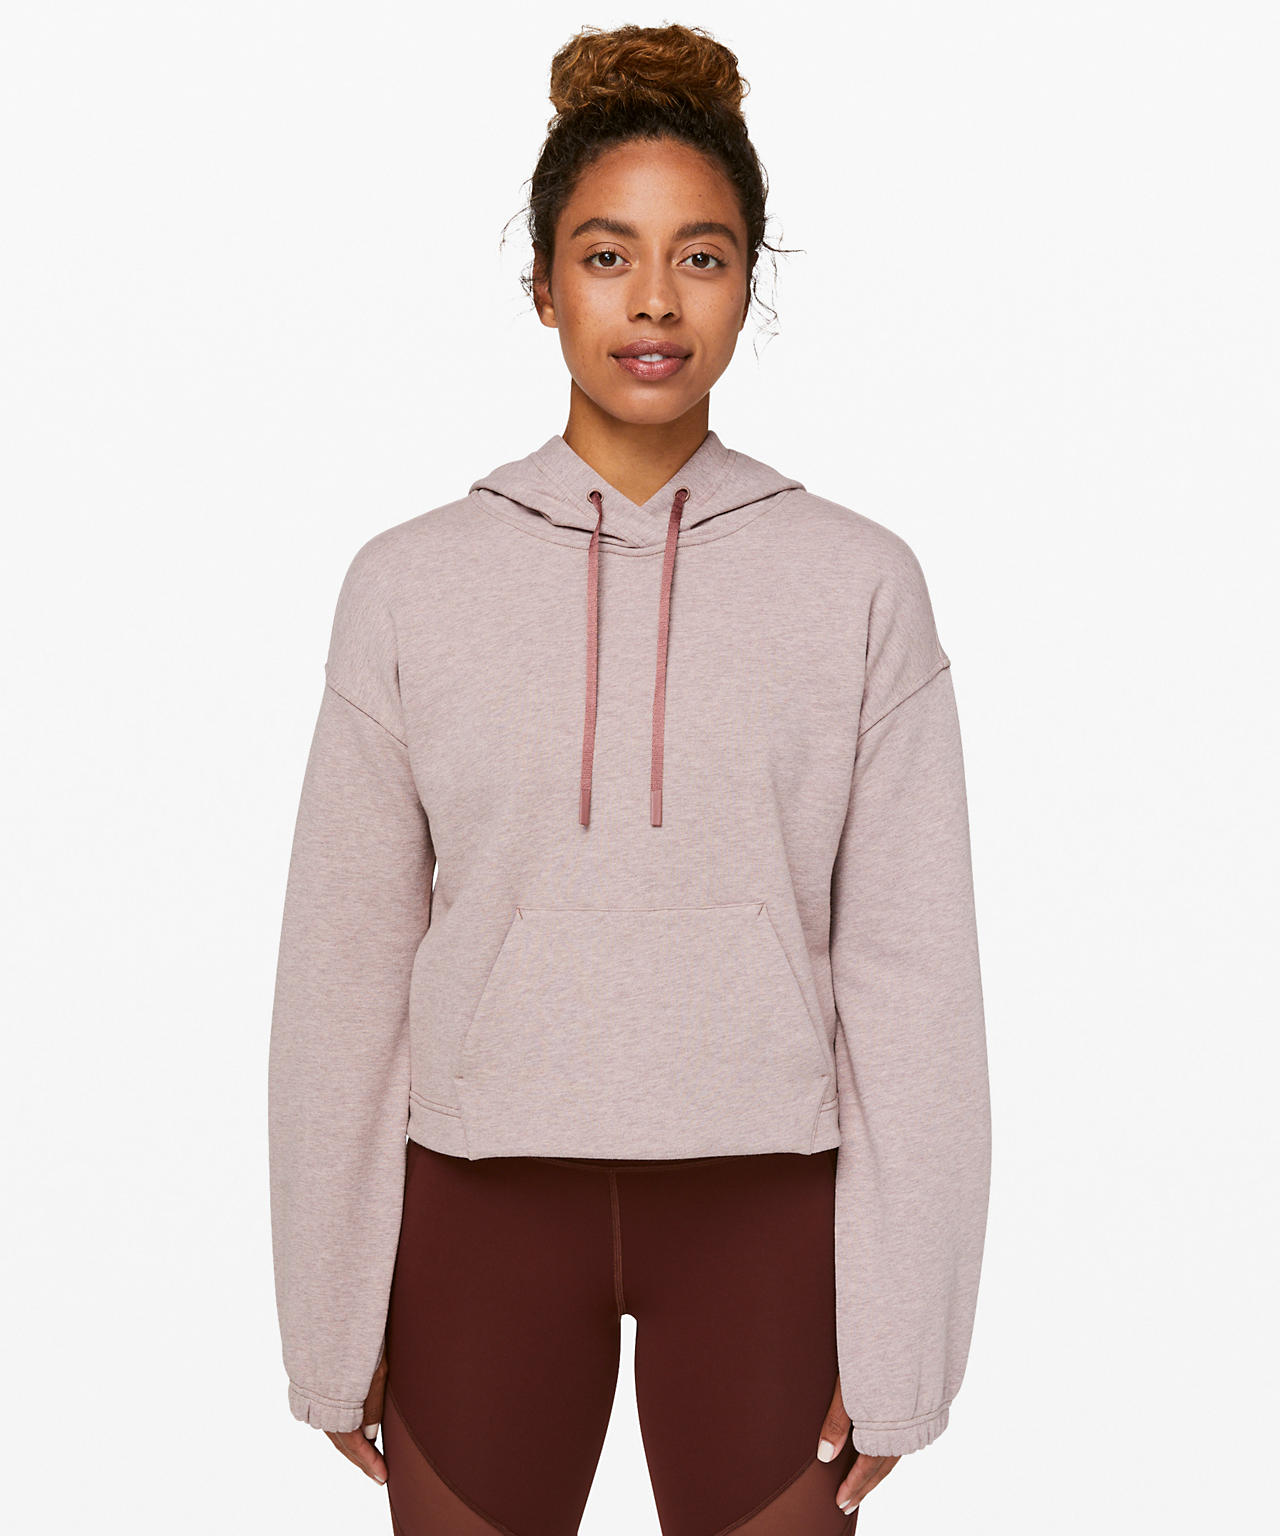 Stronger as One Cropped Hoodie  lululemon X Barry's